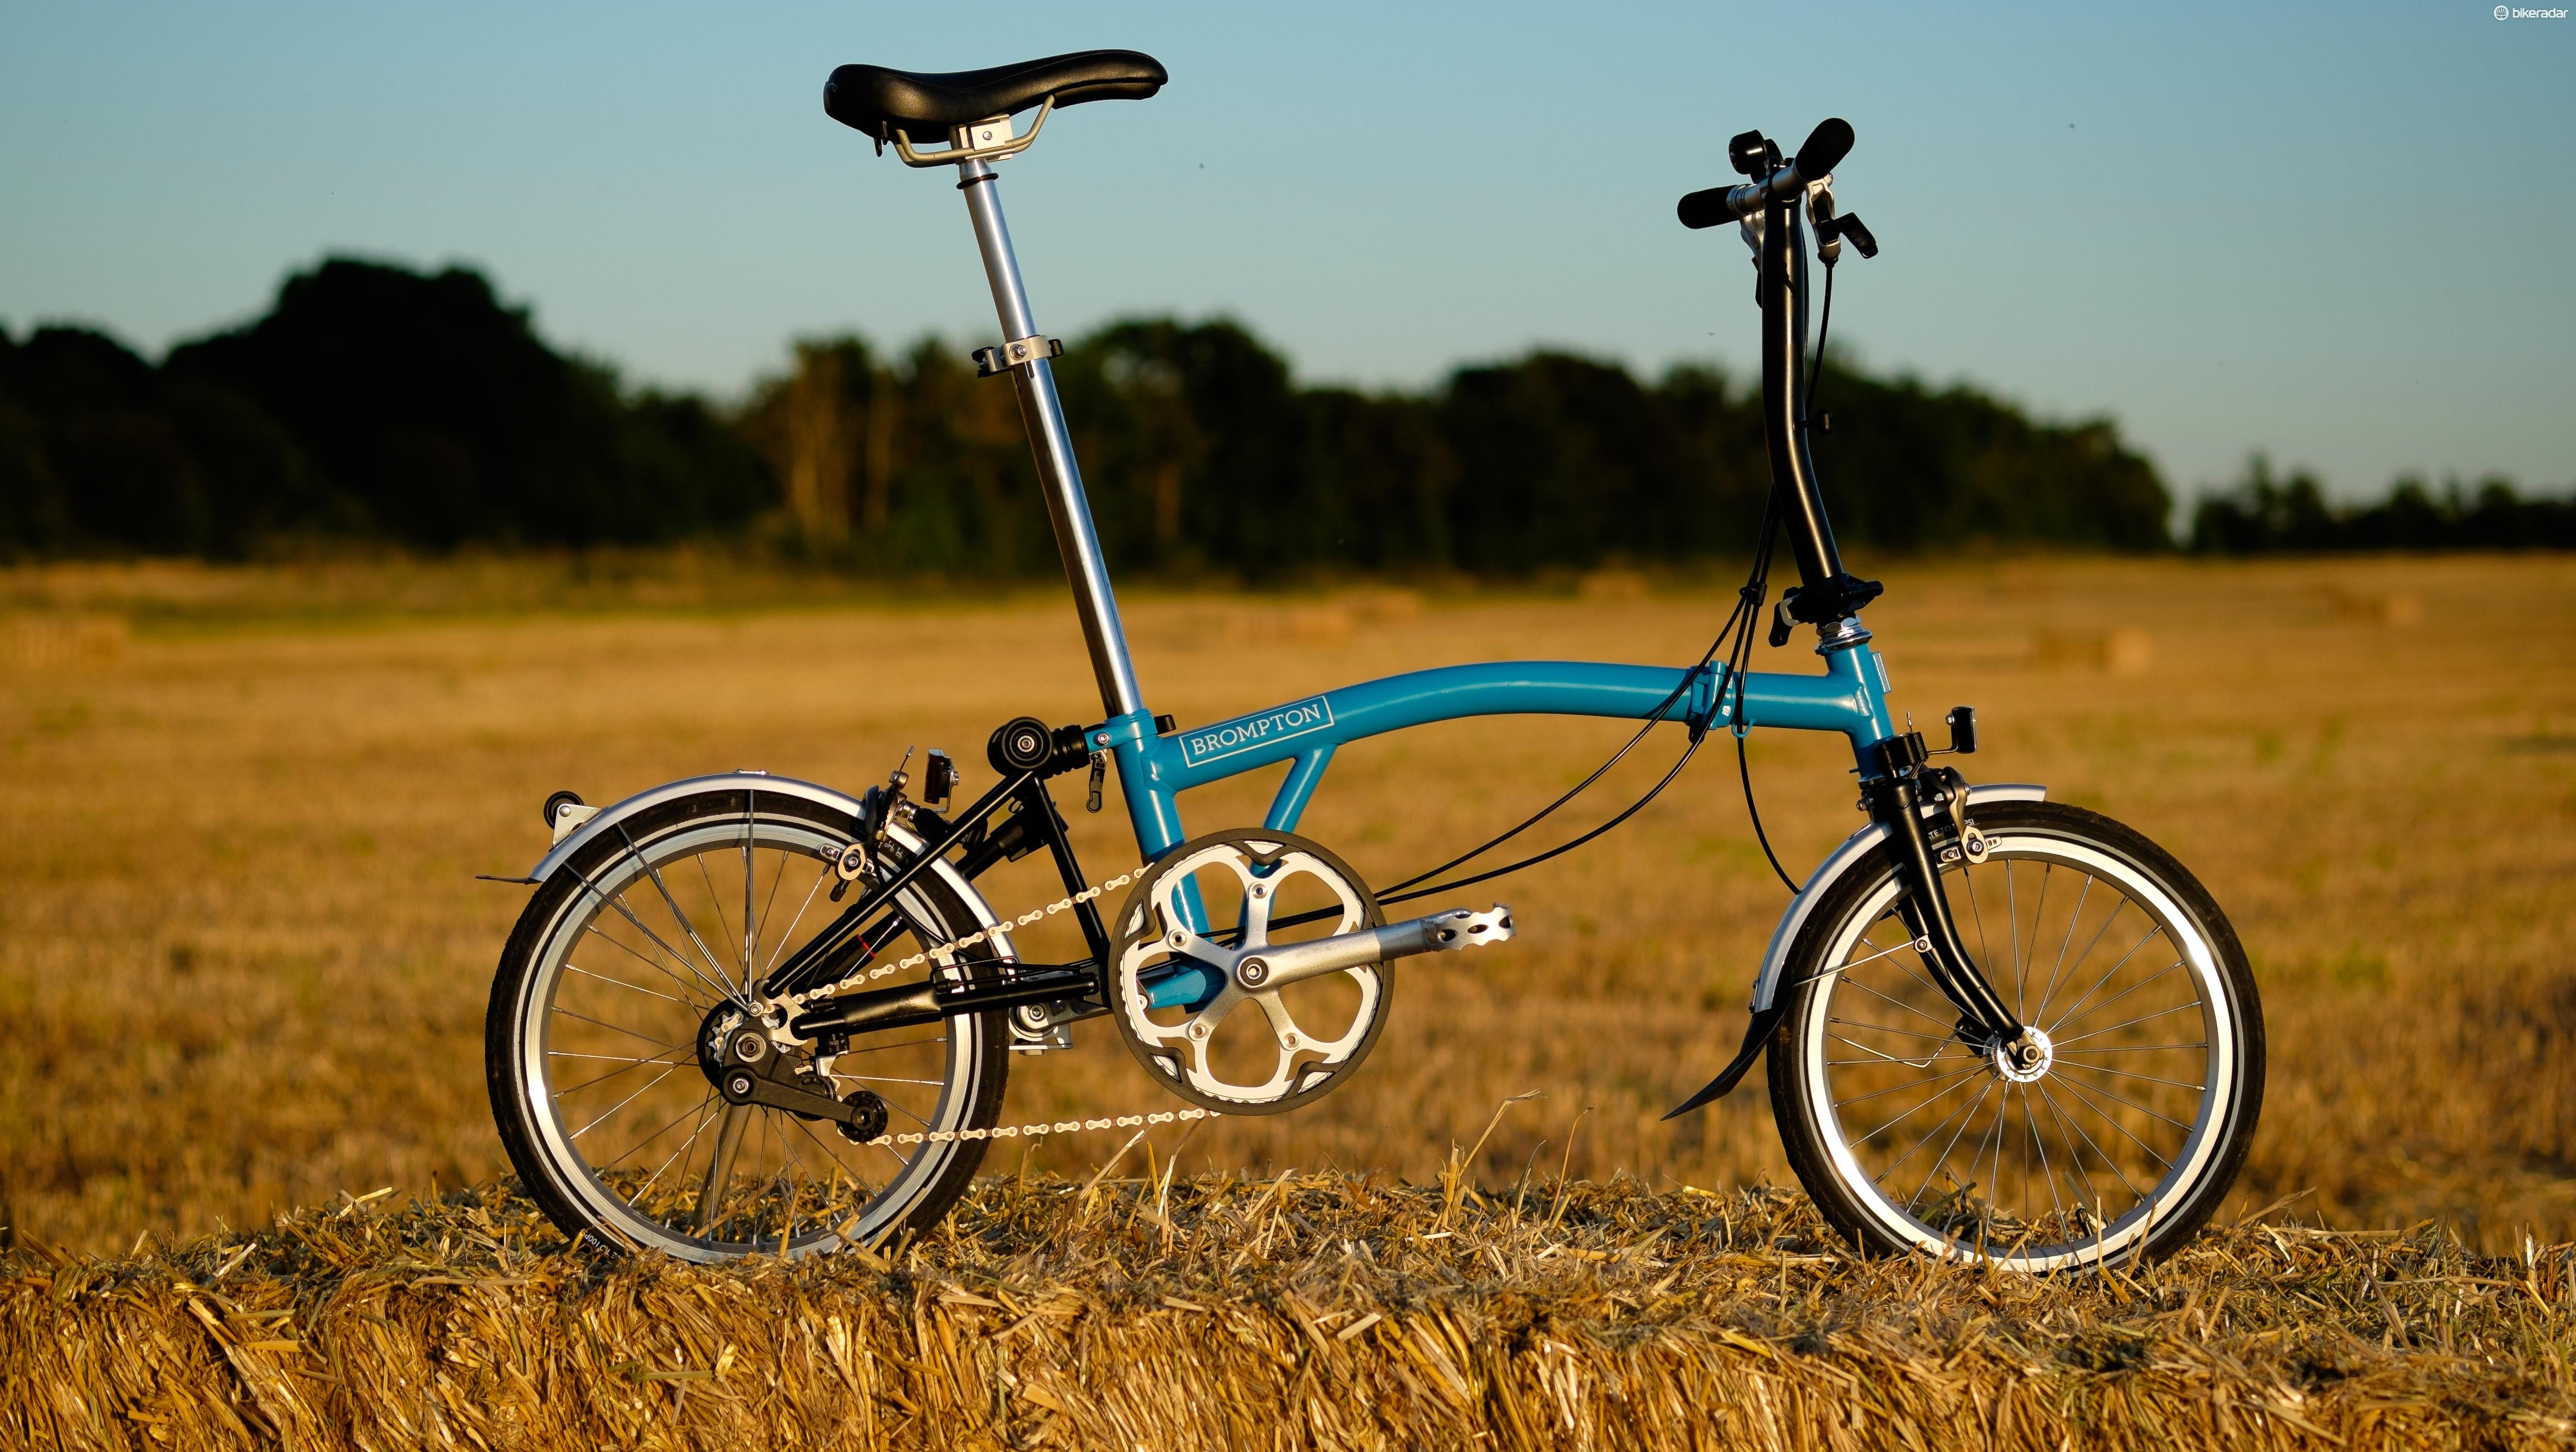 Brompton Bikes Brompton Bikes Latest Reviews News And Buying Advice Bikeradar